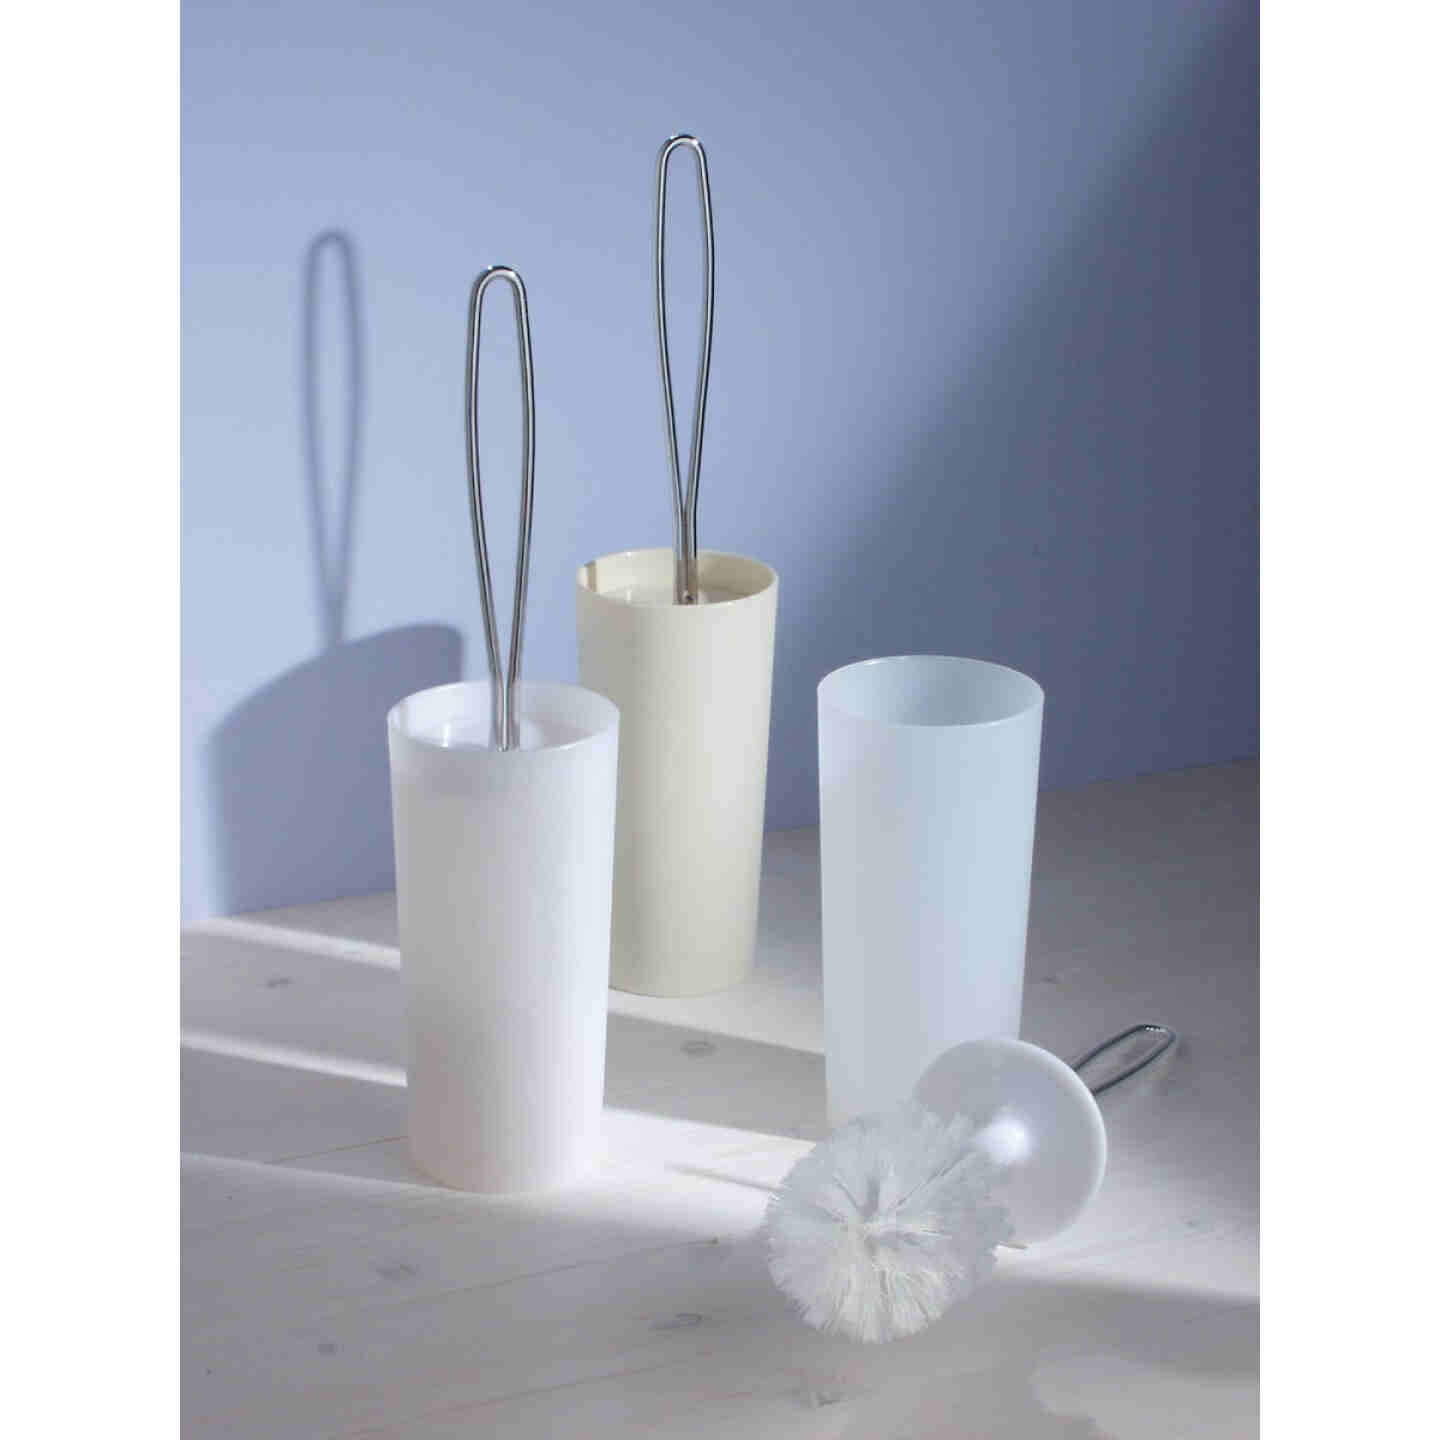 InterDesign 16.5 In. Loop Toilet Bowl Brush With Caddy Image 2